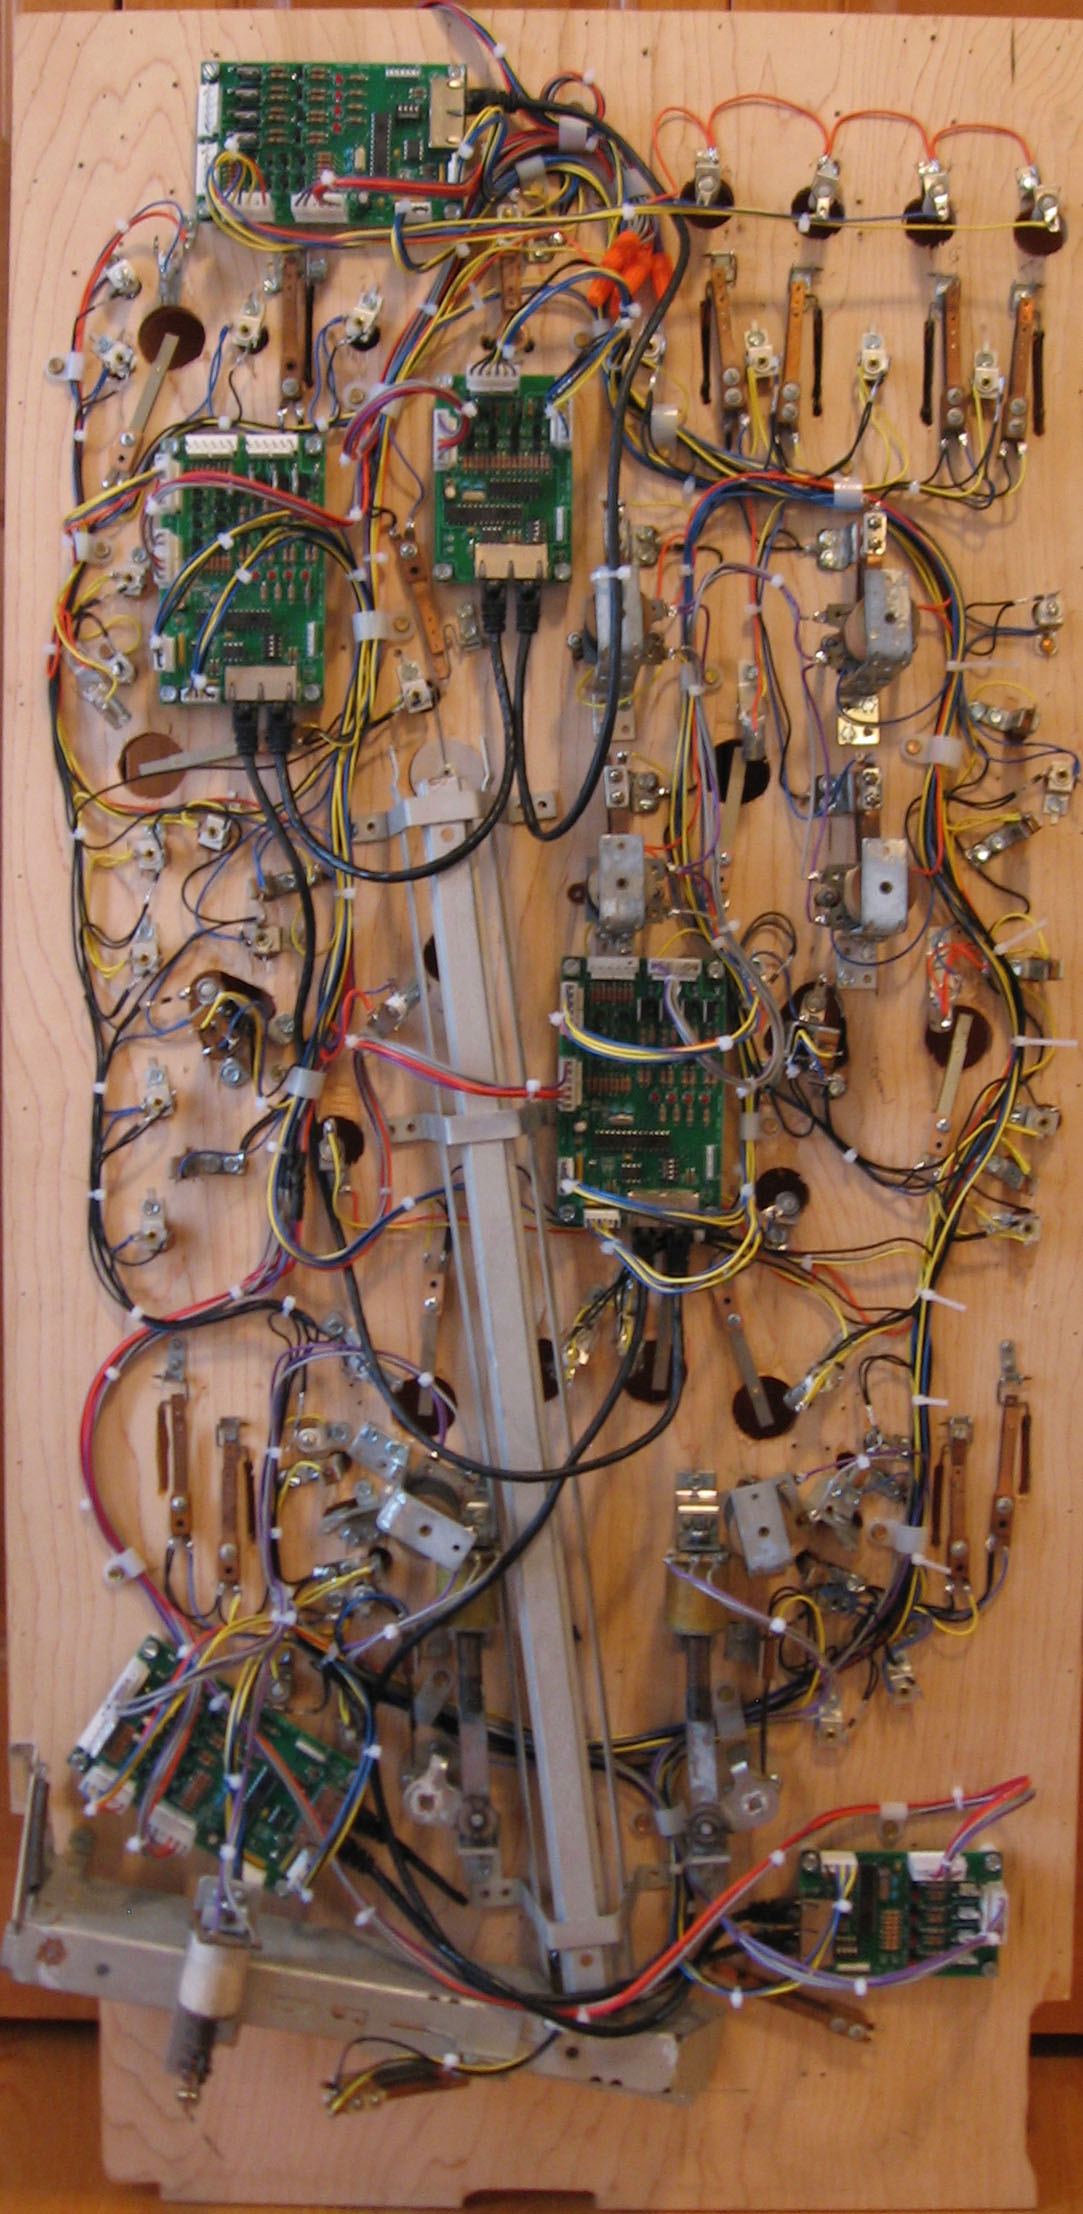 Playfield Wiring For Pinkit Controllers Numbering Convention Under View Final Wired